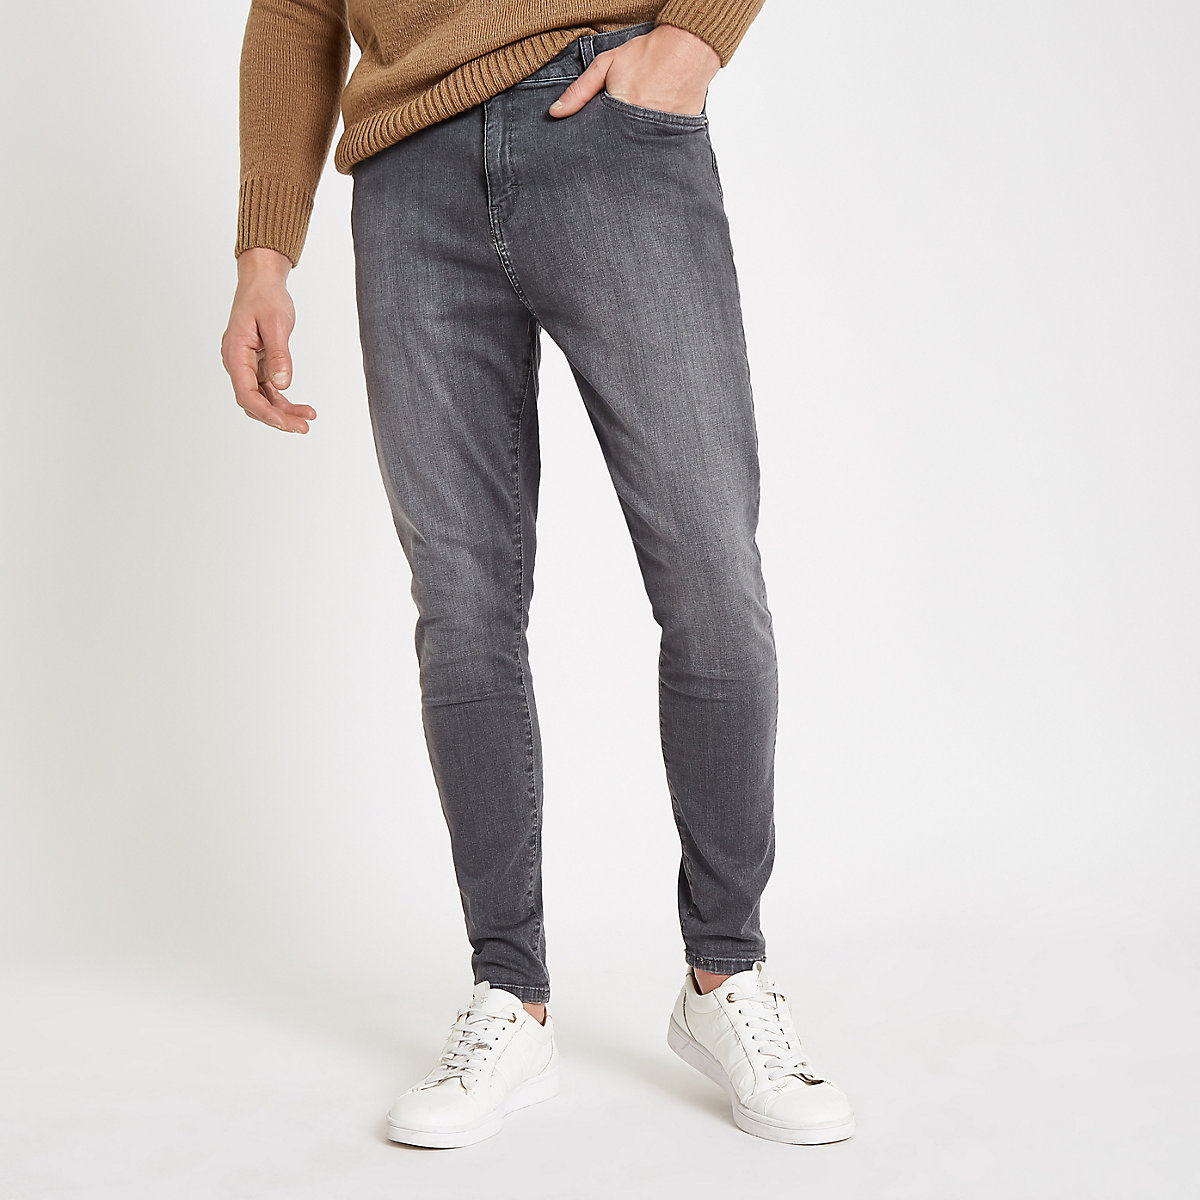 Monkee Genes grey super skinny jeans